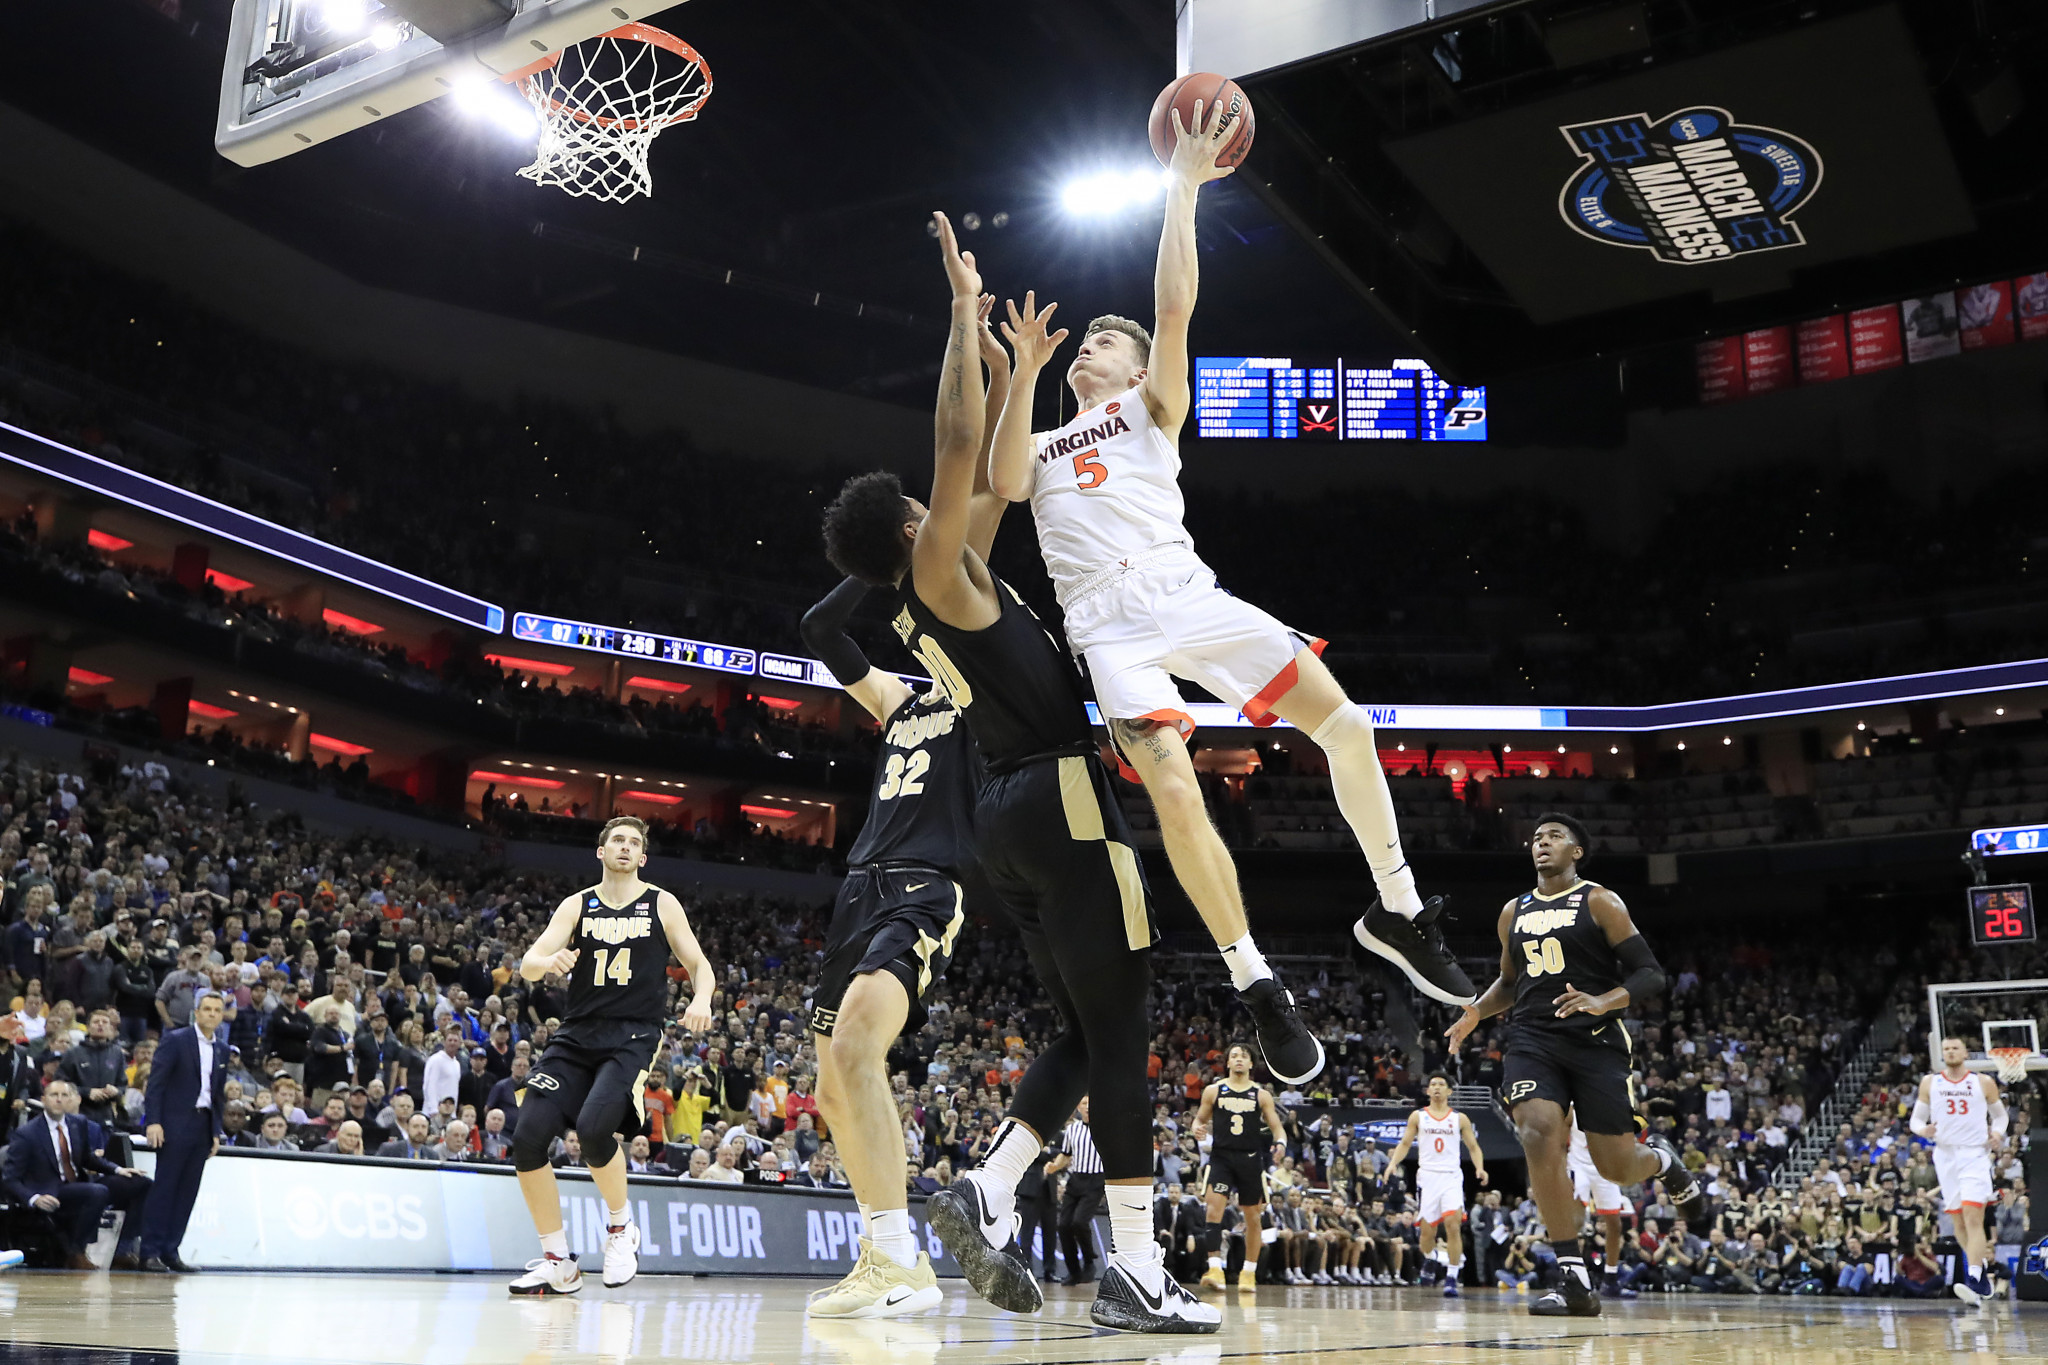 Virginia defeated to Texas Tech to win the title in 2019 when the March Madness was last staged ©Getty Images